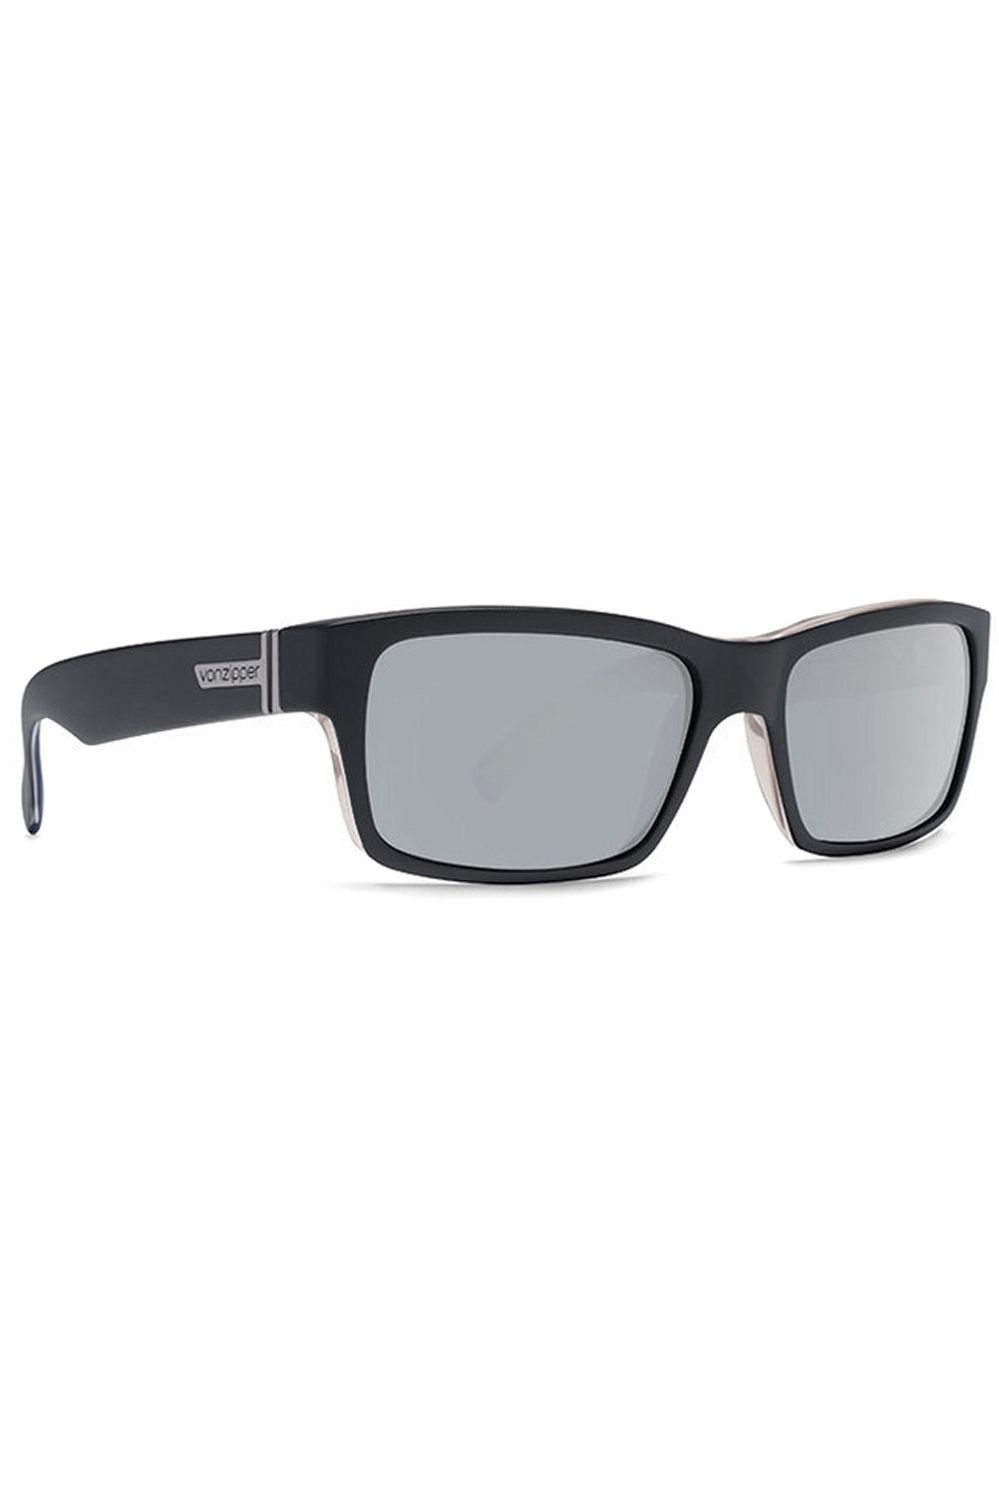 Oculos VonZipper FULTON Black Steel / Silver Grey Chrome